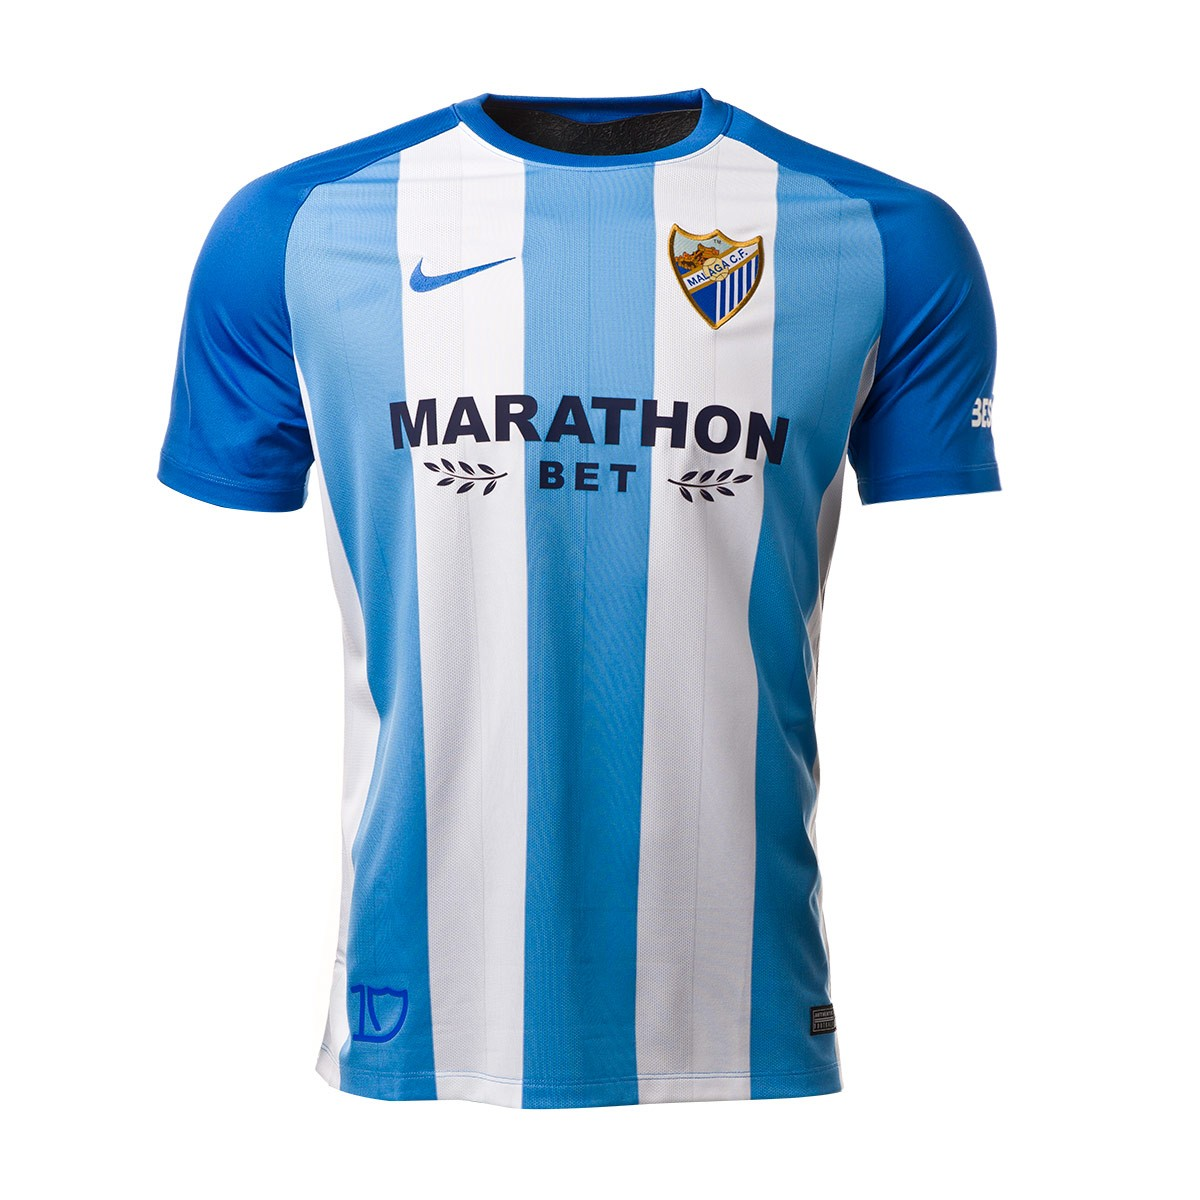 3f9af2191de27 Jersey Nike Málaga CF 1st kit 2017-2018 White-Blue - Football store Fútbol  Emotion